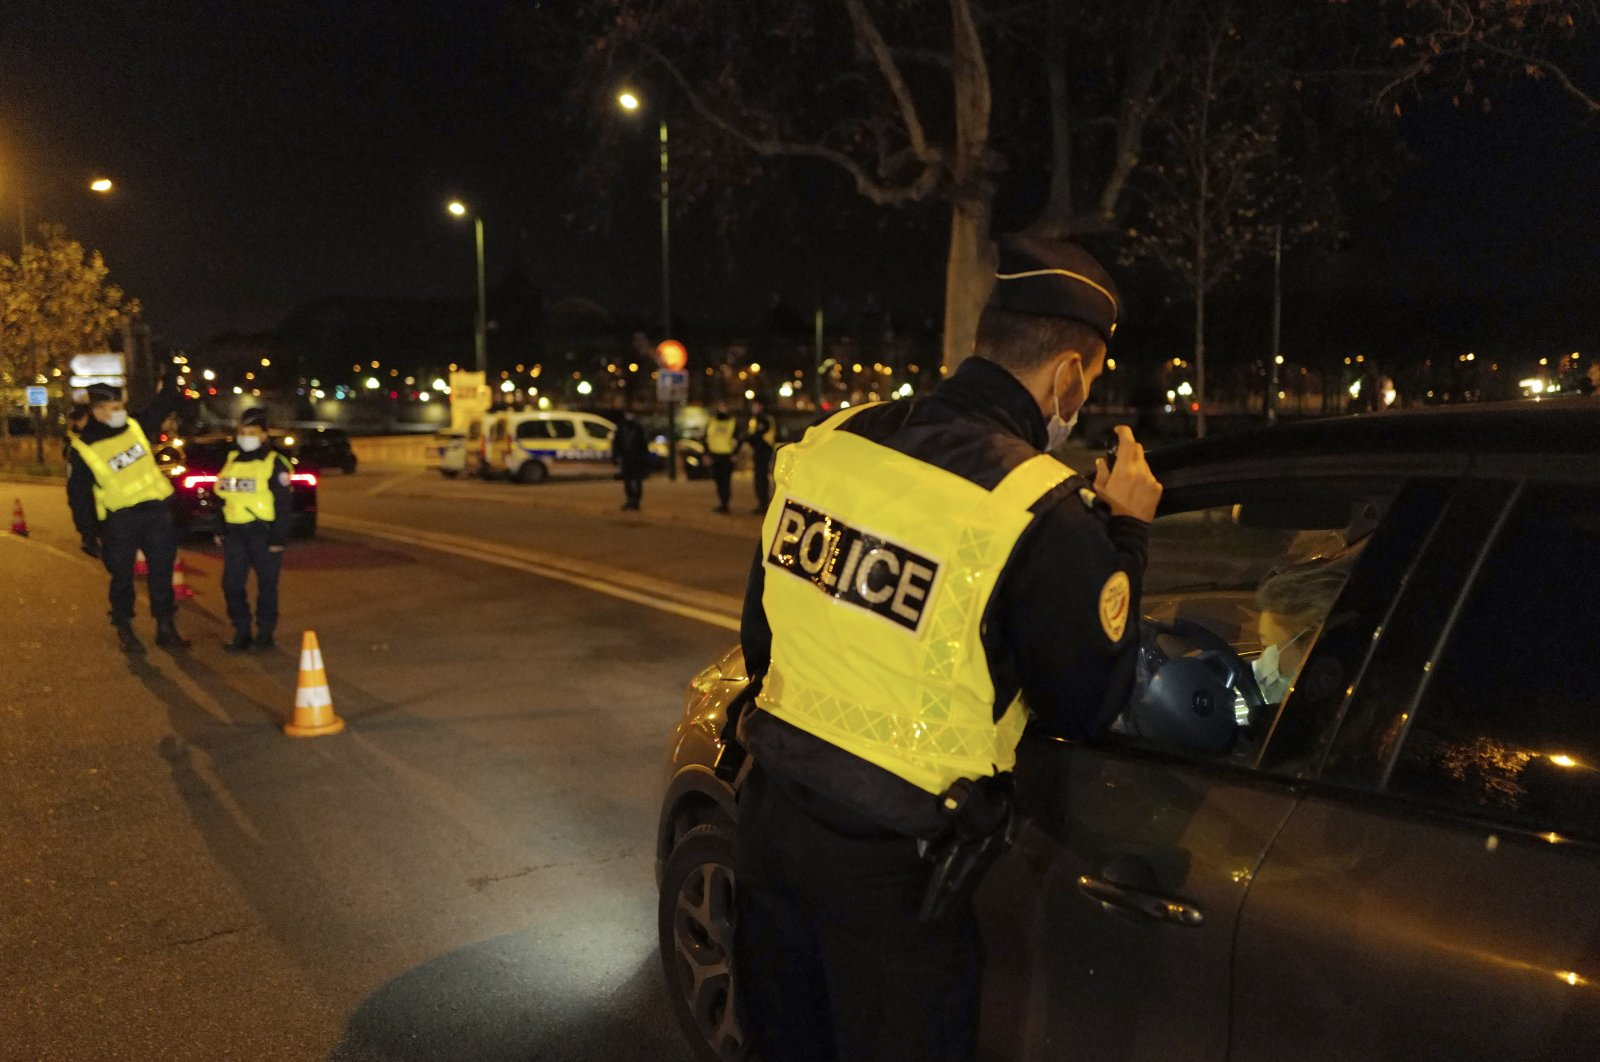 French police officers check a car near the National Assembly as they enforce a coronavirus-related curfew, in Paris, France, Dec. 15, 2020. (AP Photo)